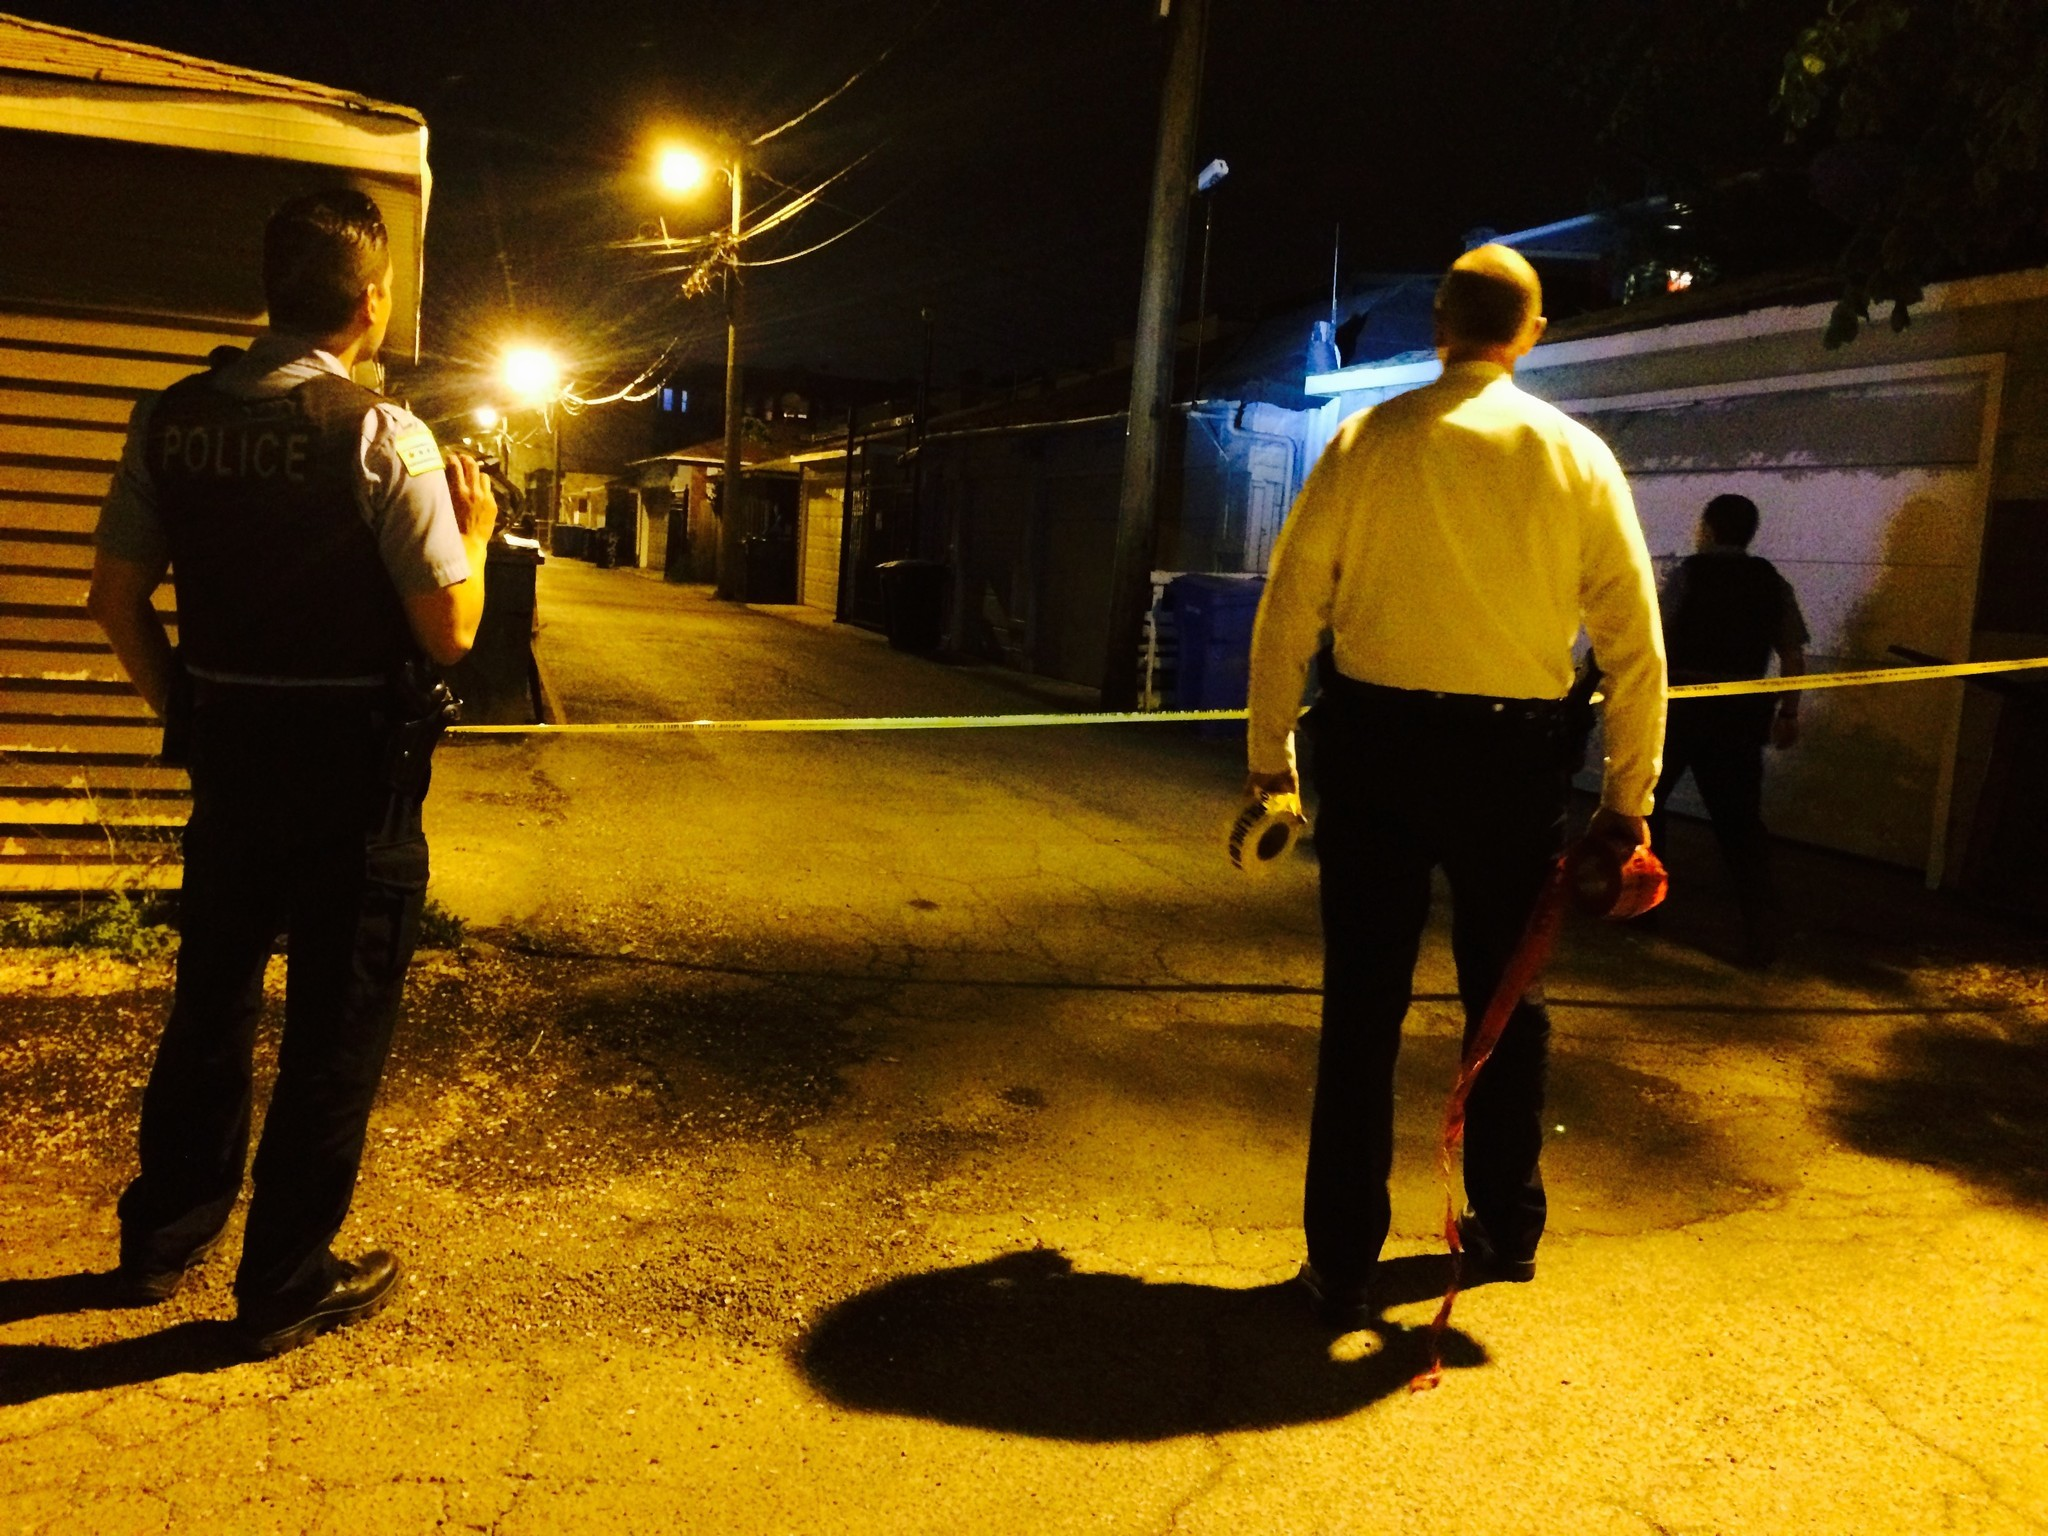 Man dead, 1 wounded during shootings on West, South sides